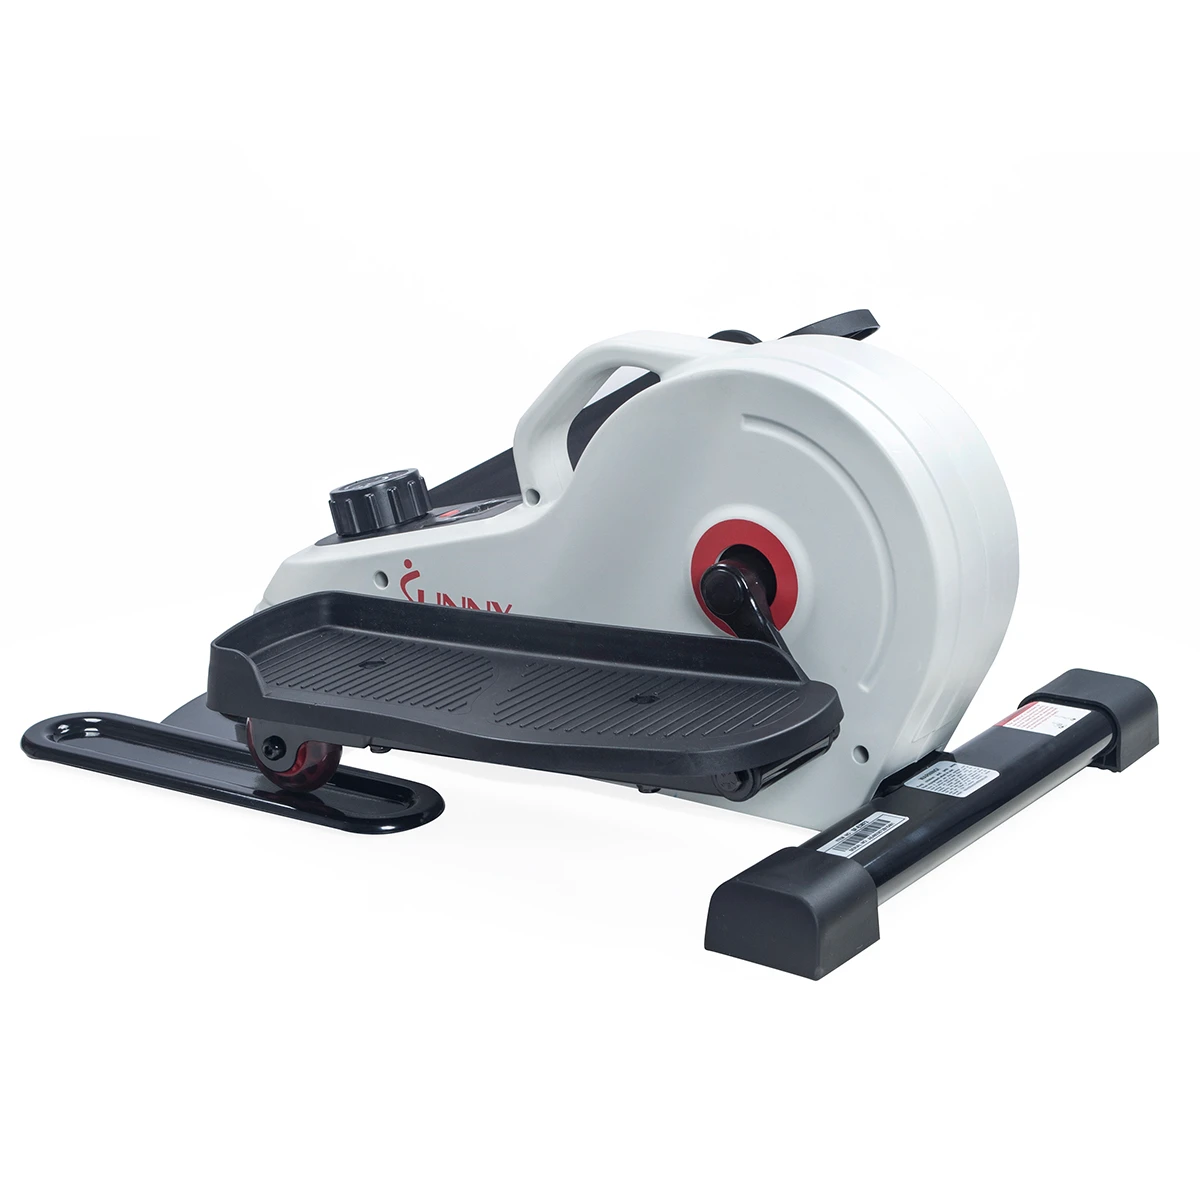 Sunny Health & Fitness Fully Assembled Magnetic Under Desk Elliptical has 8 resistance levels that can be adjusted